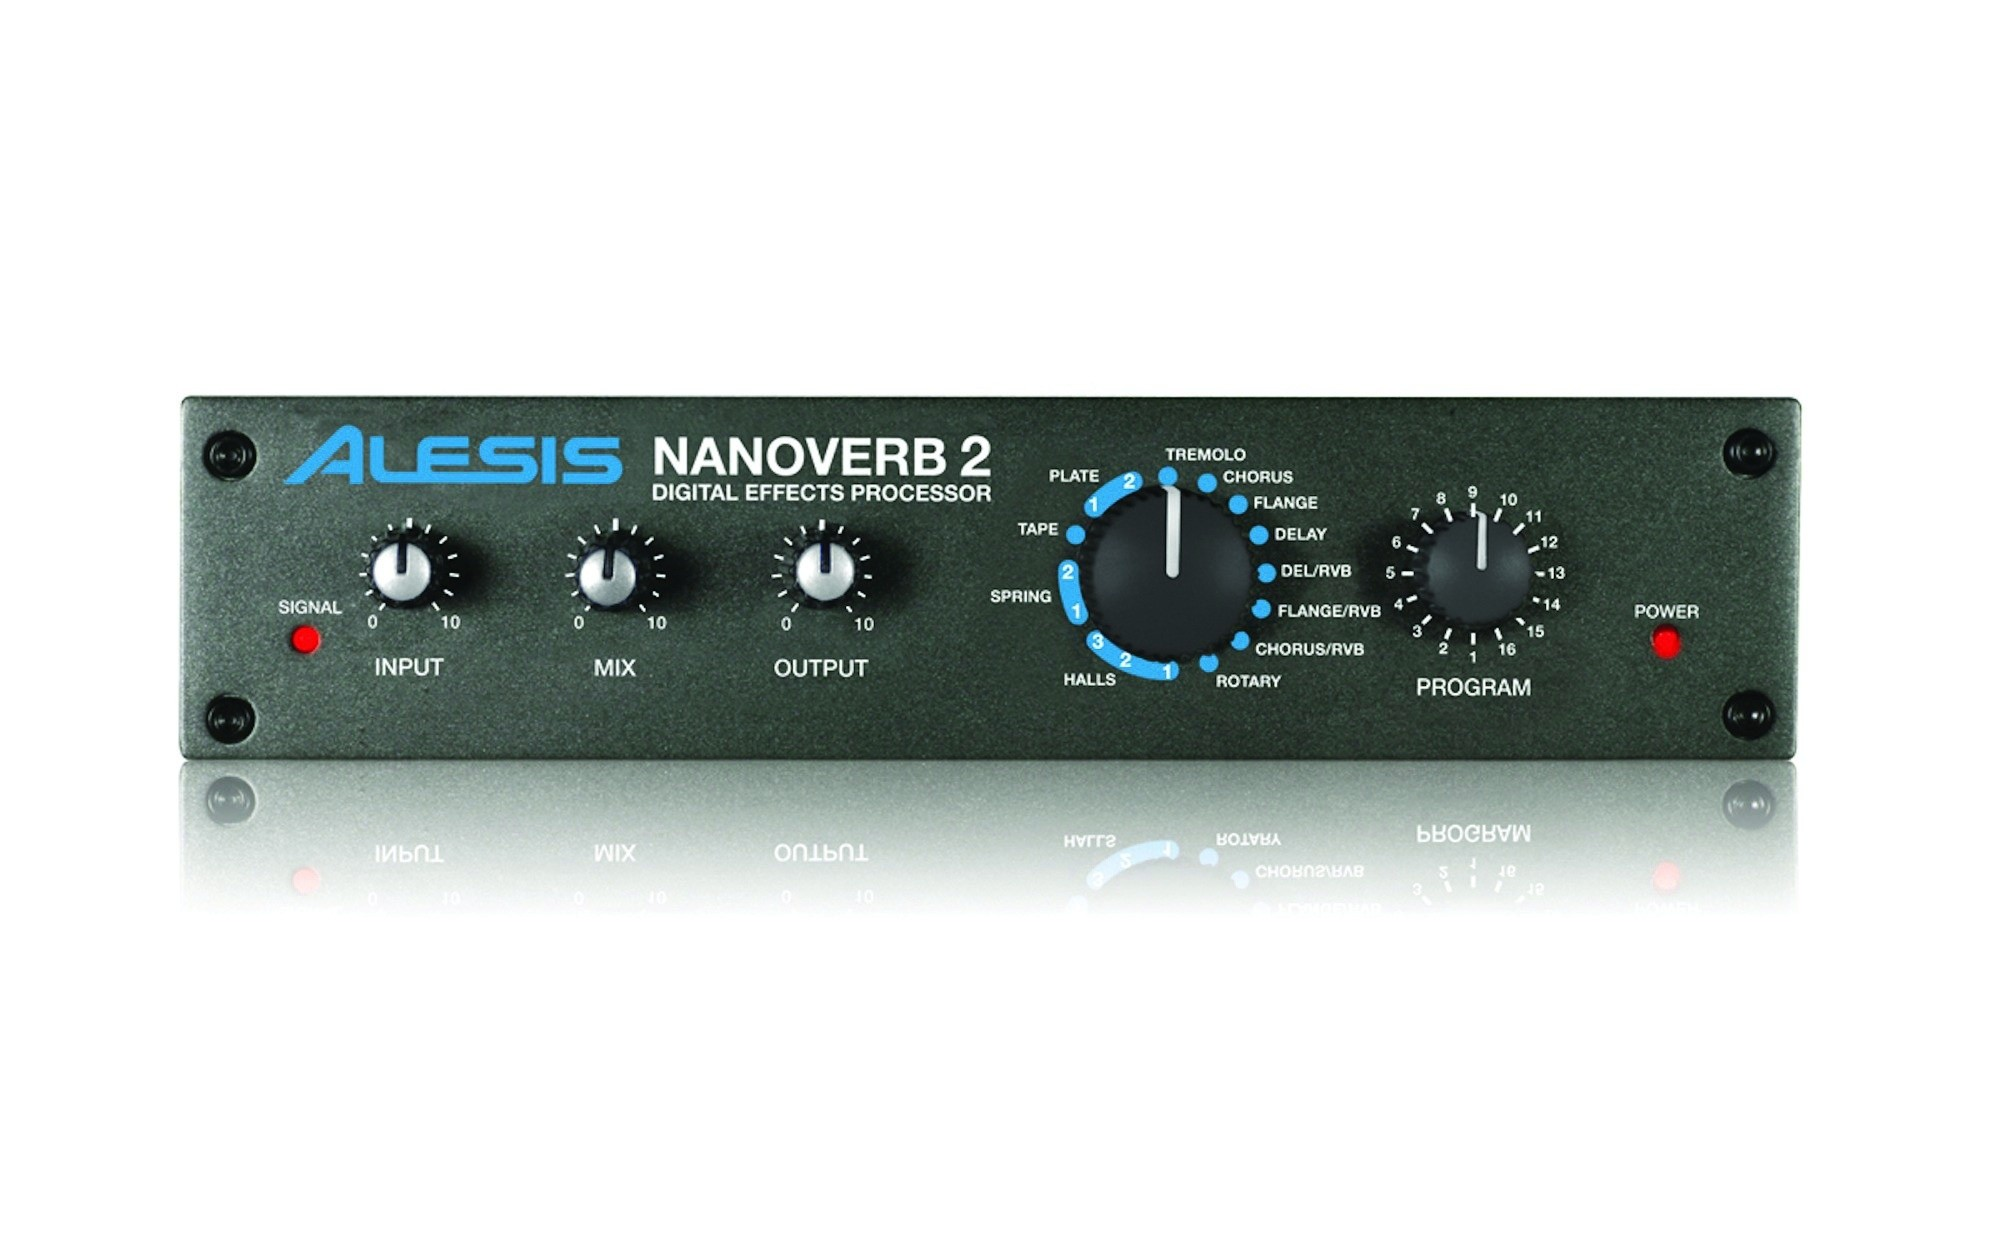 alesis nanoverb 2 digital sound effects processor reverb delay chorus studio ebay. Black Bedroom Furniture Sets. Home Design Ideas